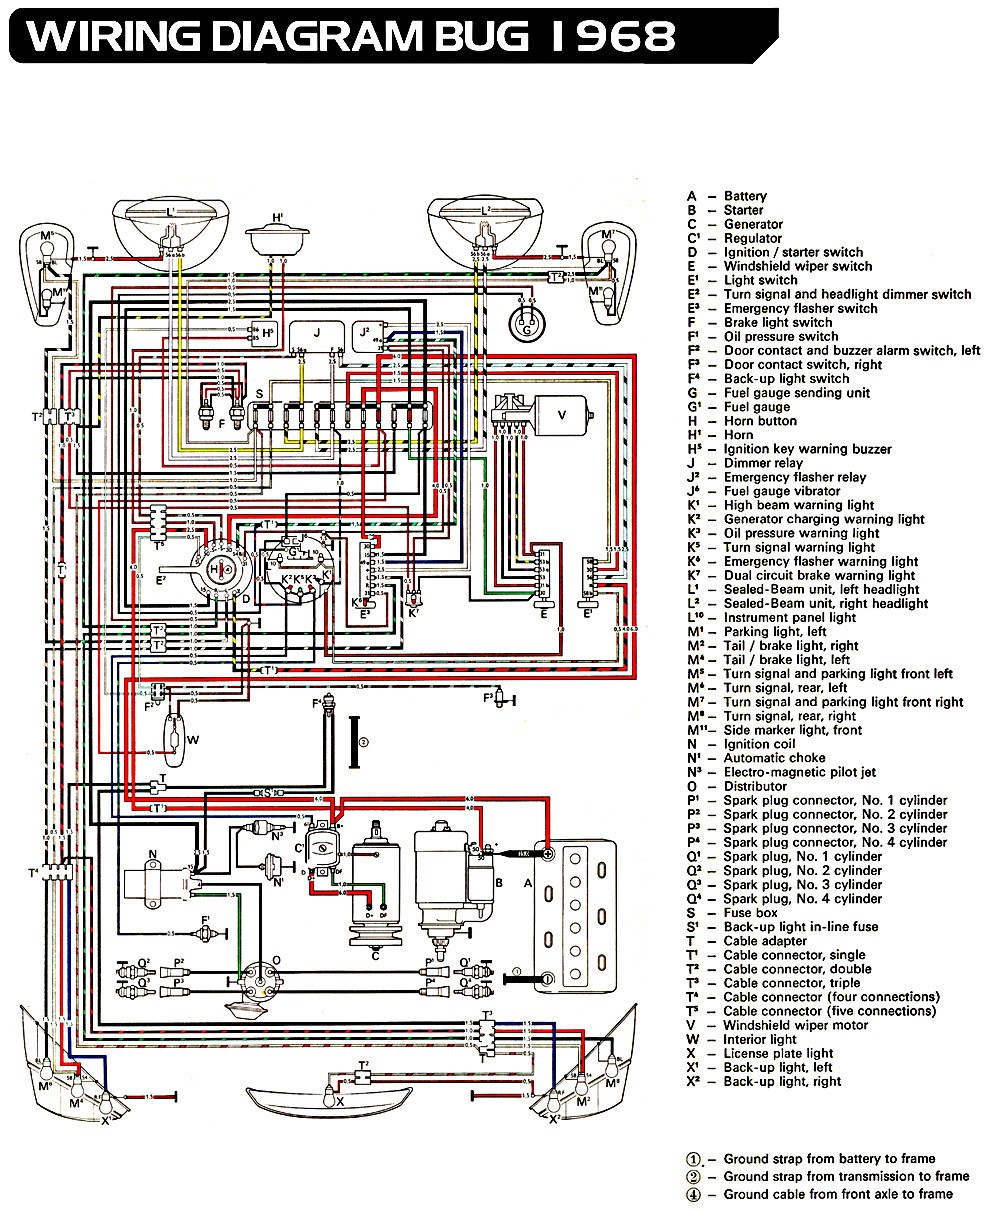 Vw Ignition Switch Wiring Diagram from mainetreasurechest.com